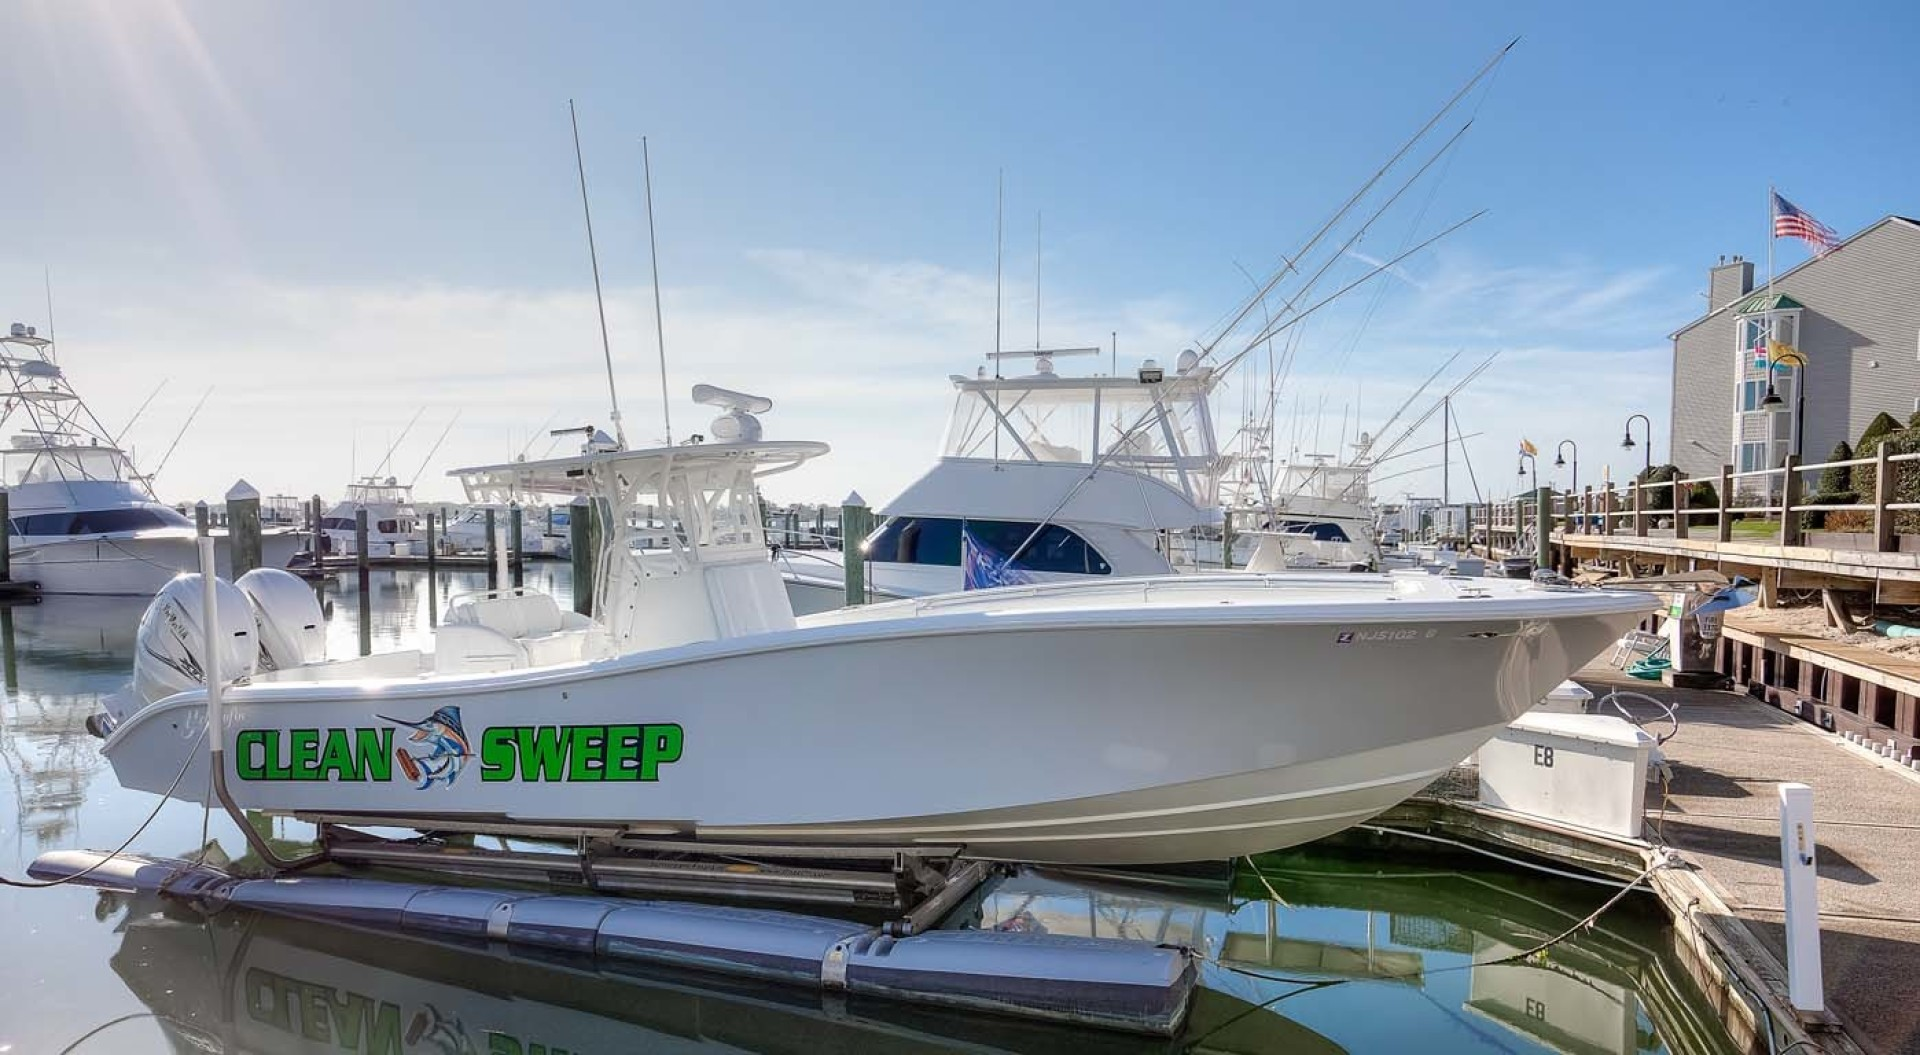 Yellowfin-Center Console 2009-Clean Sweep Cape May-New Jersey-United States-Main -1538537 | Thumbnail